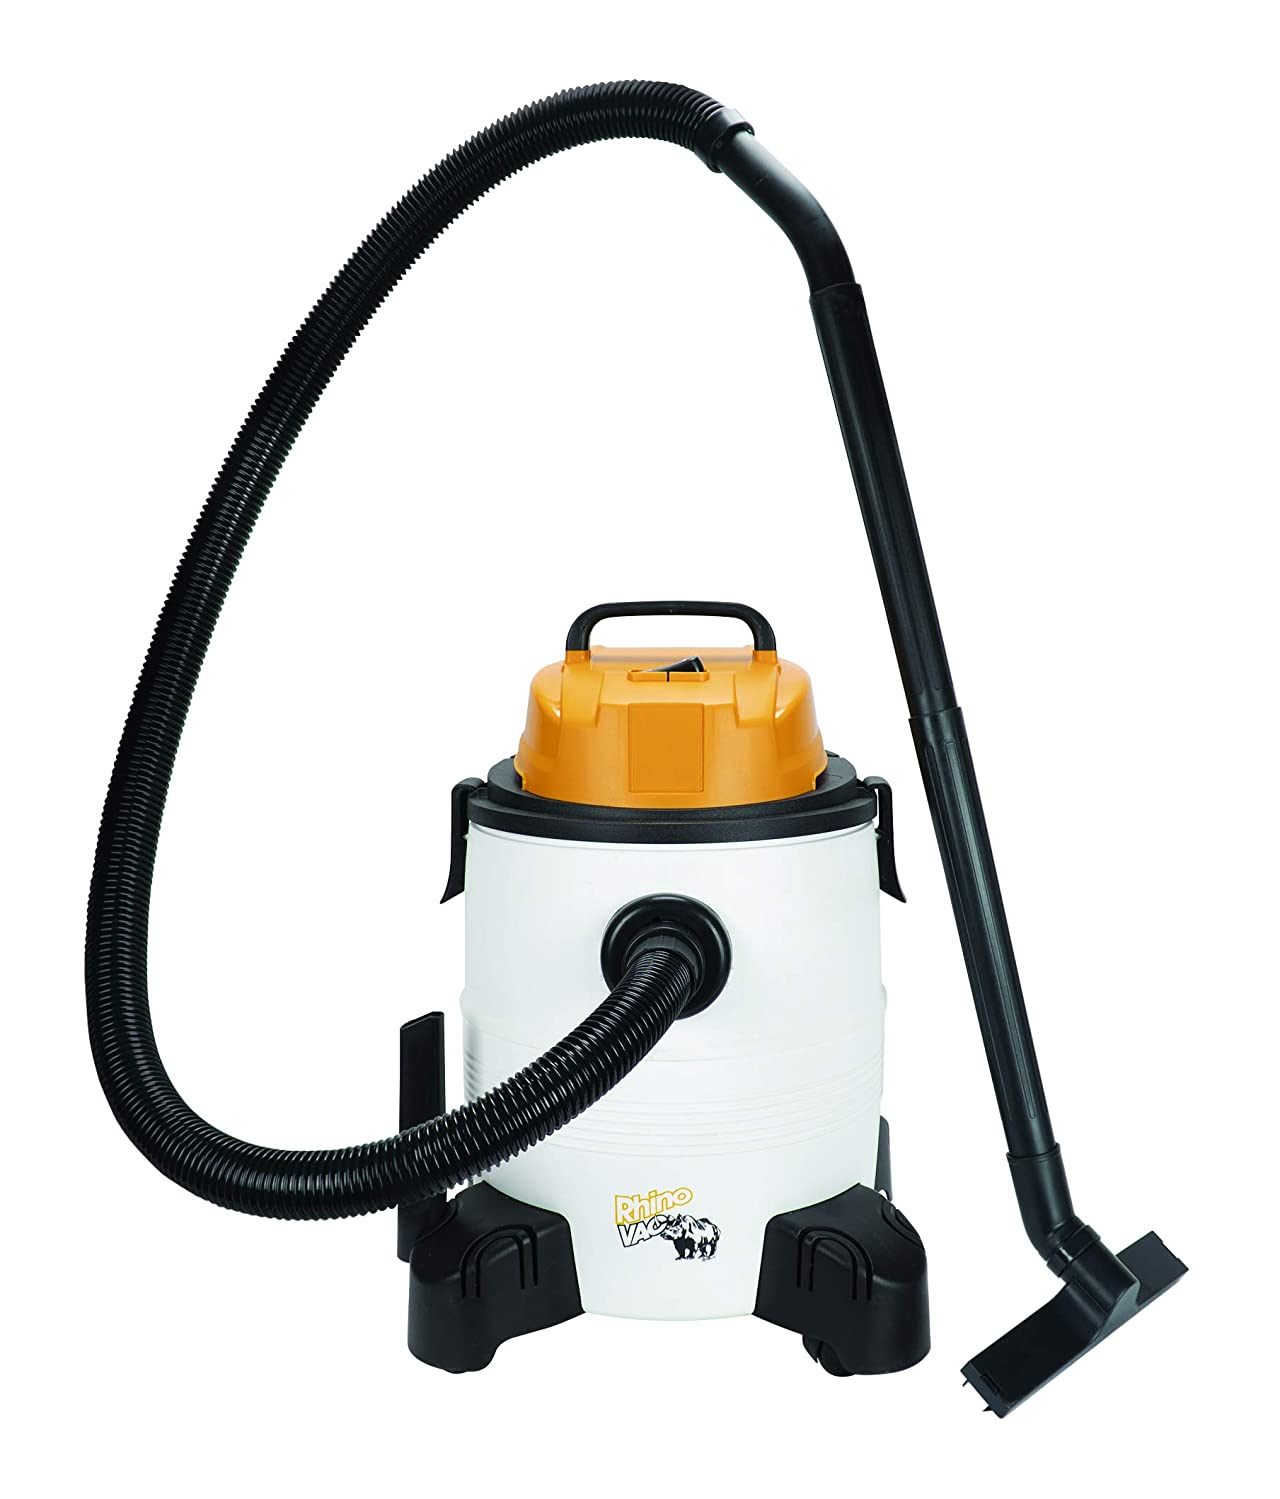 Rhino Vac Portable Wet & Dry Shop Vacuum, 8 gal, Swivel Casters/Wheels, Accessories & Blower